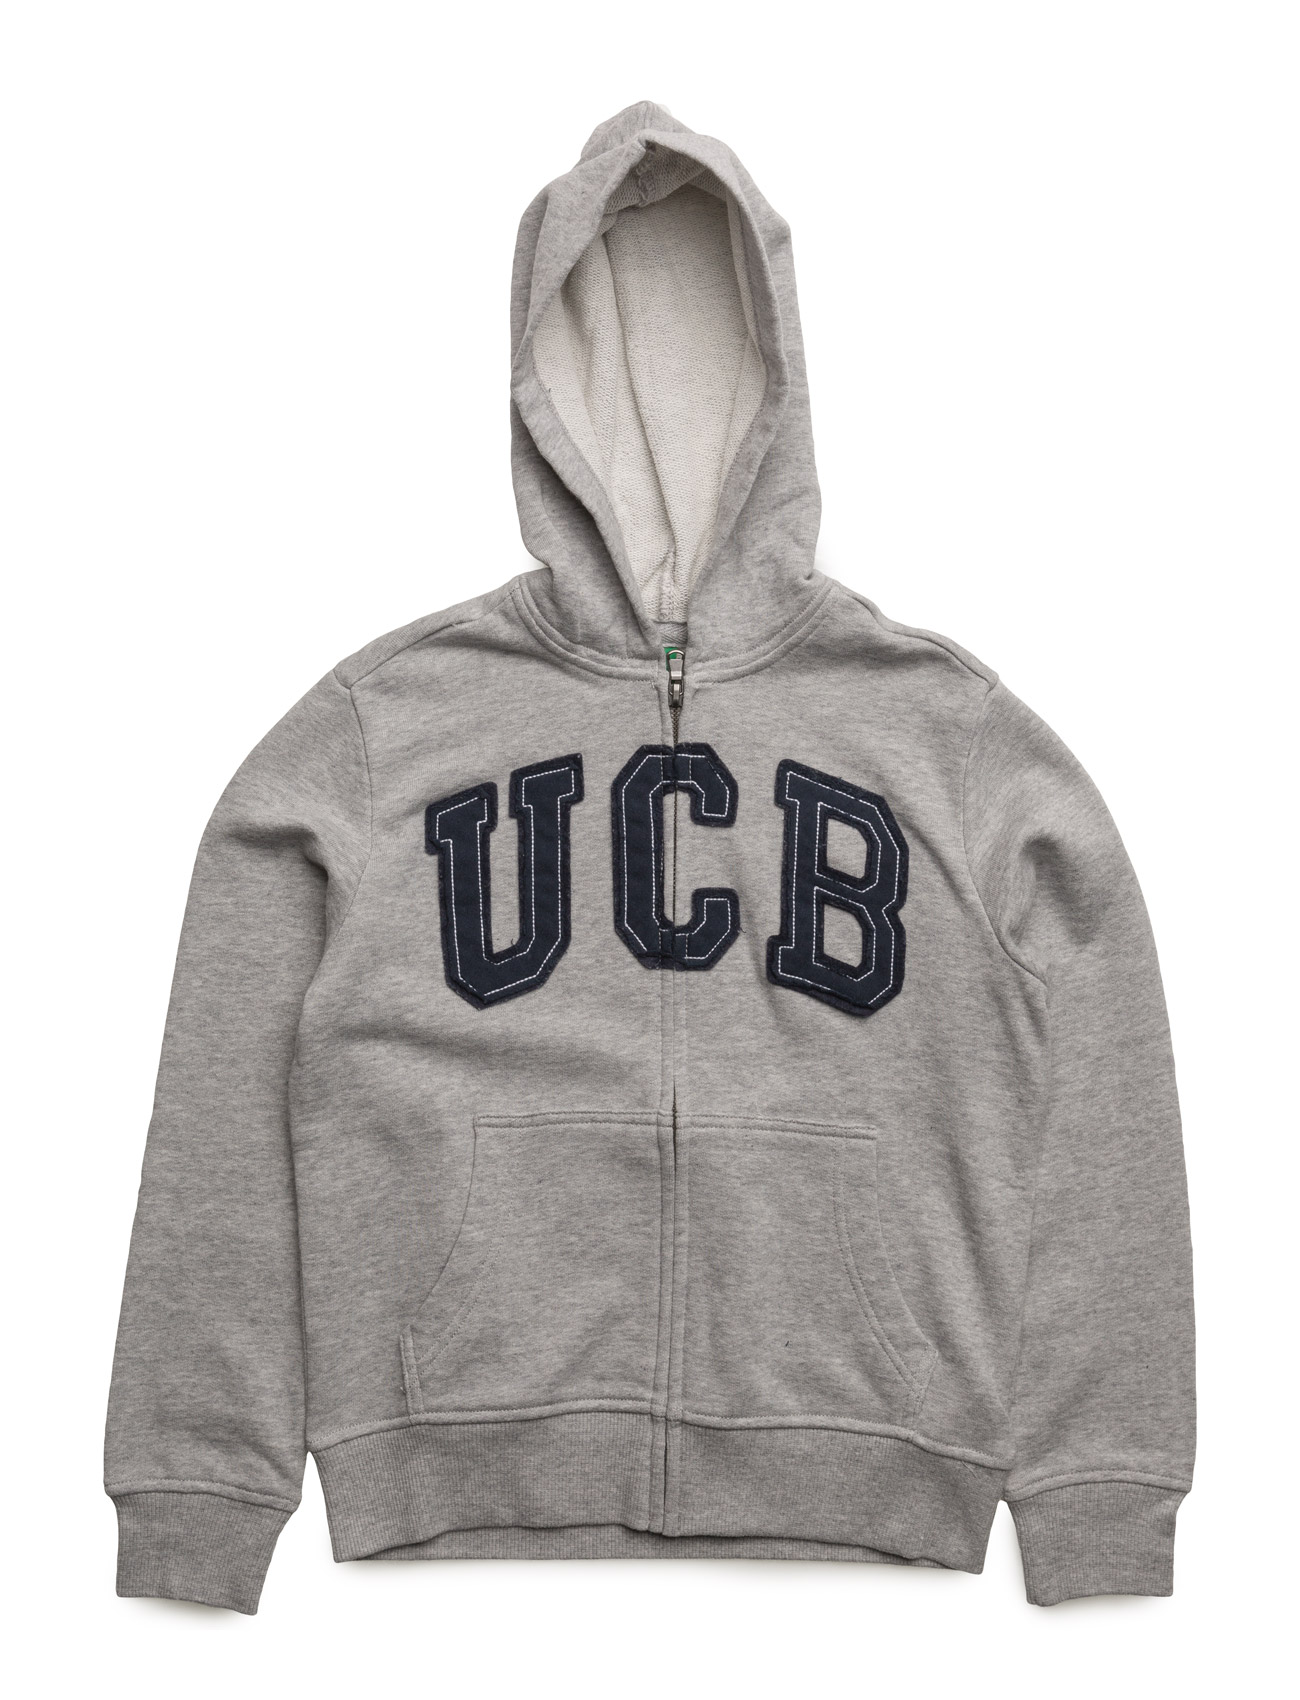 Pullover W/Hood United Colors of Benetton  til Børn i